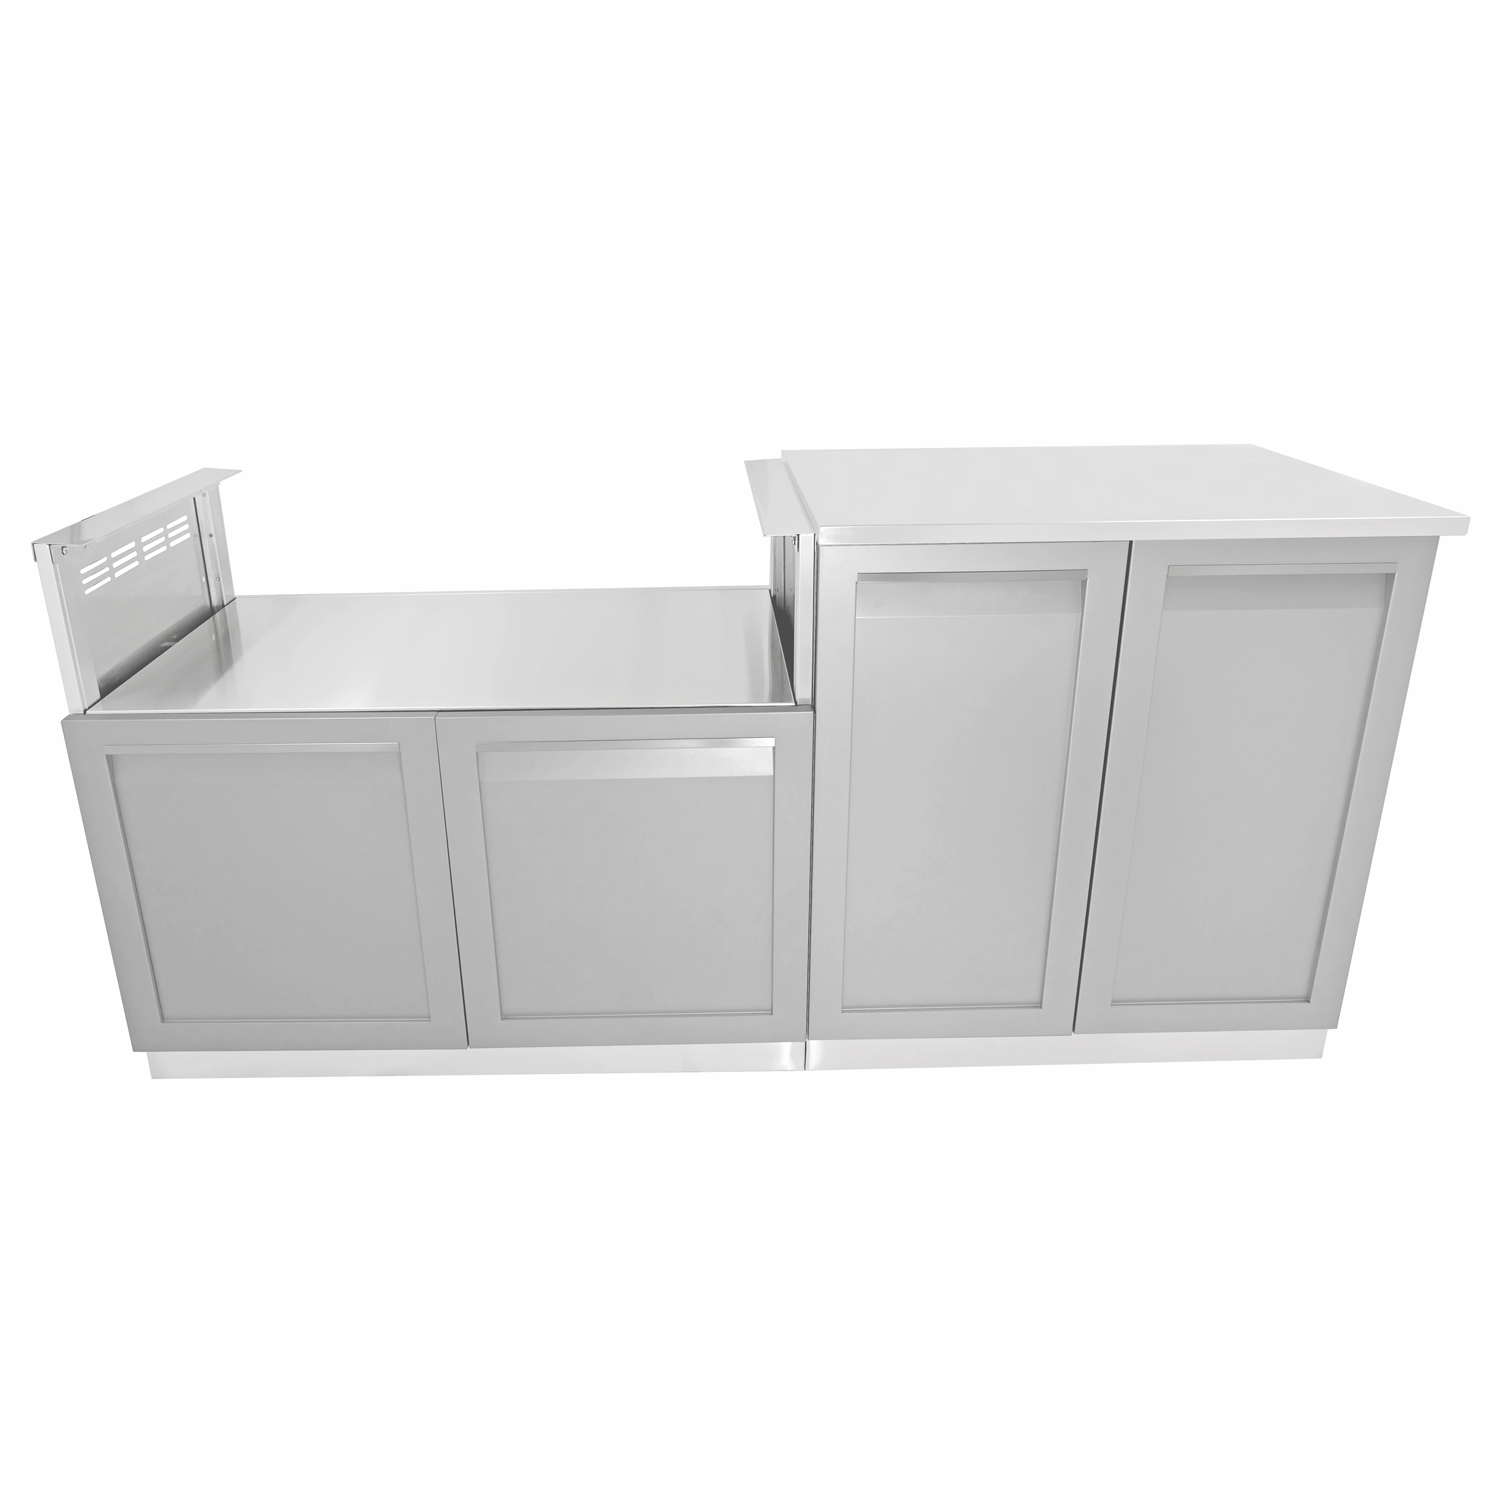 4 Life Outdoor Cabinet Set In Gray